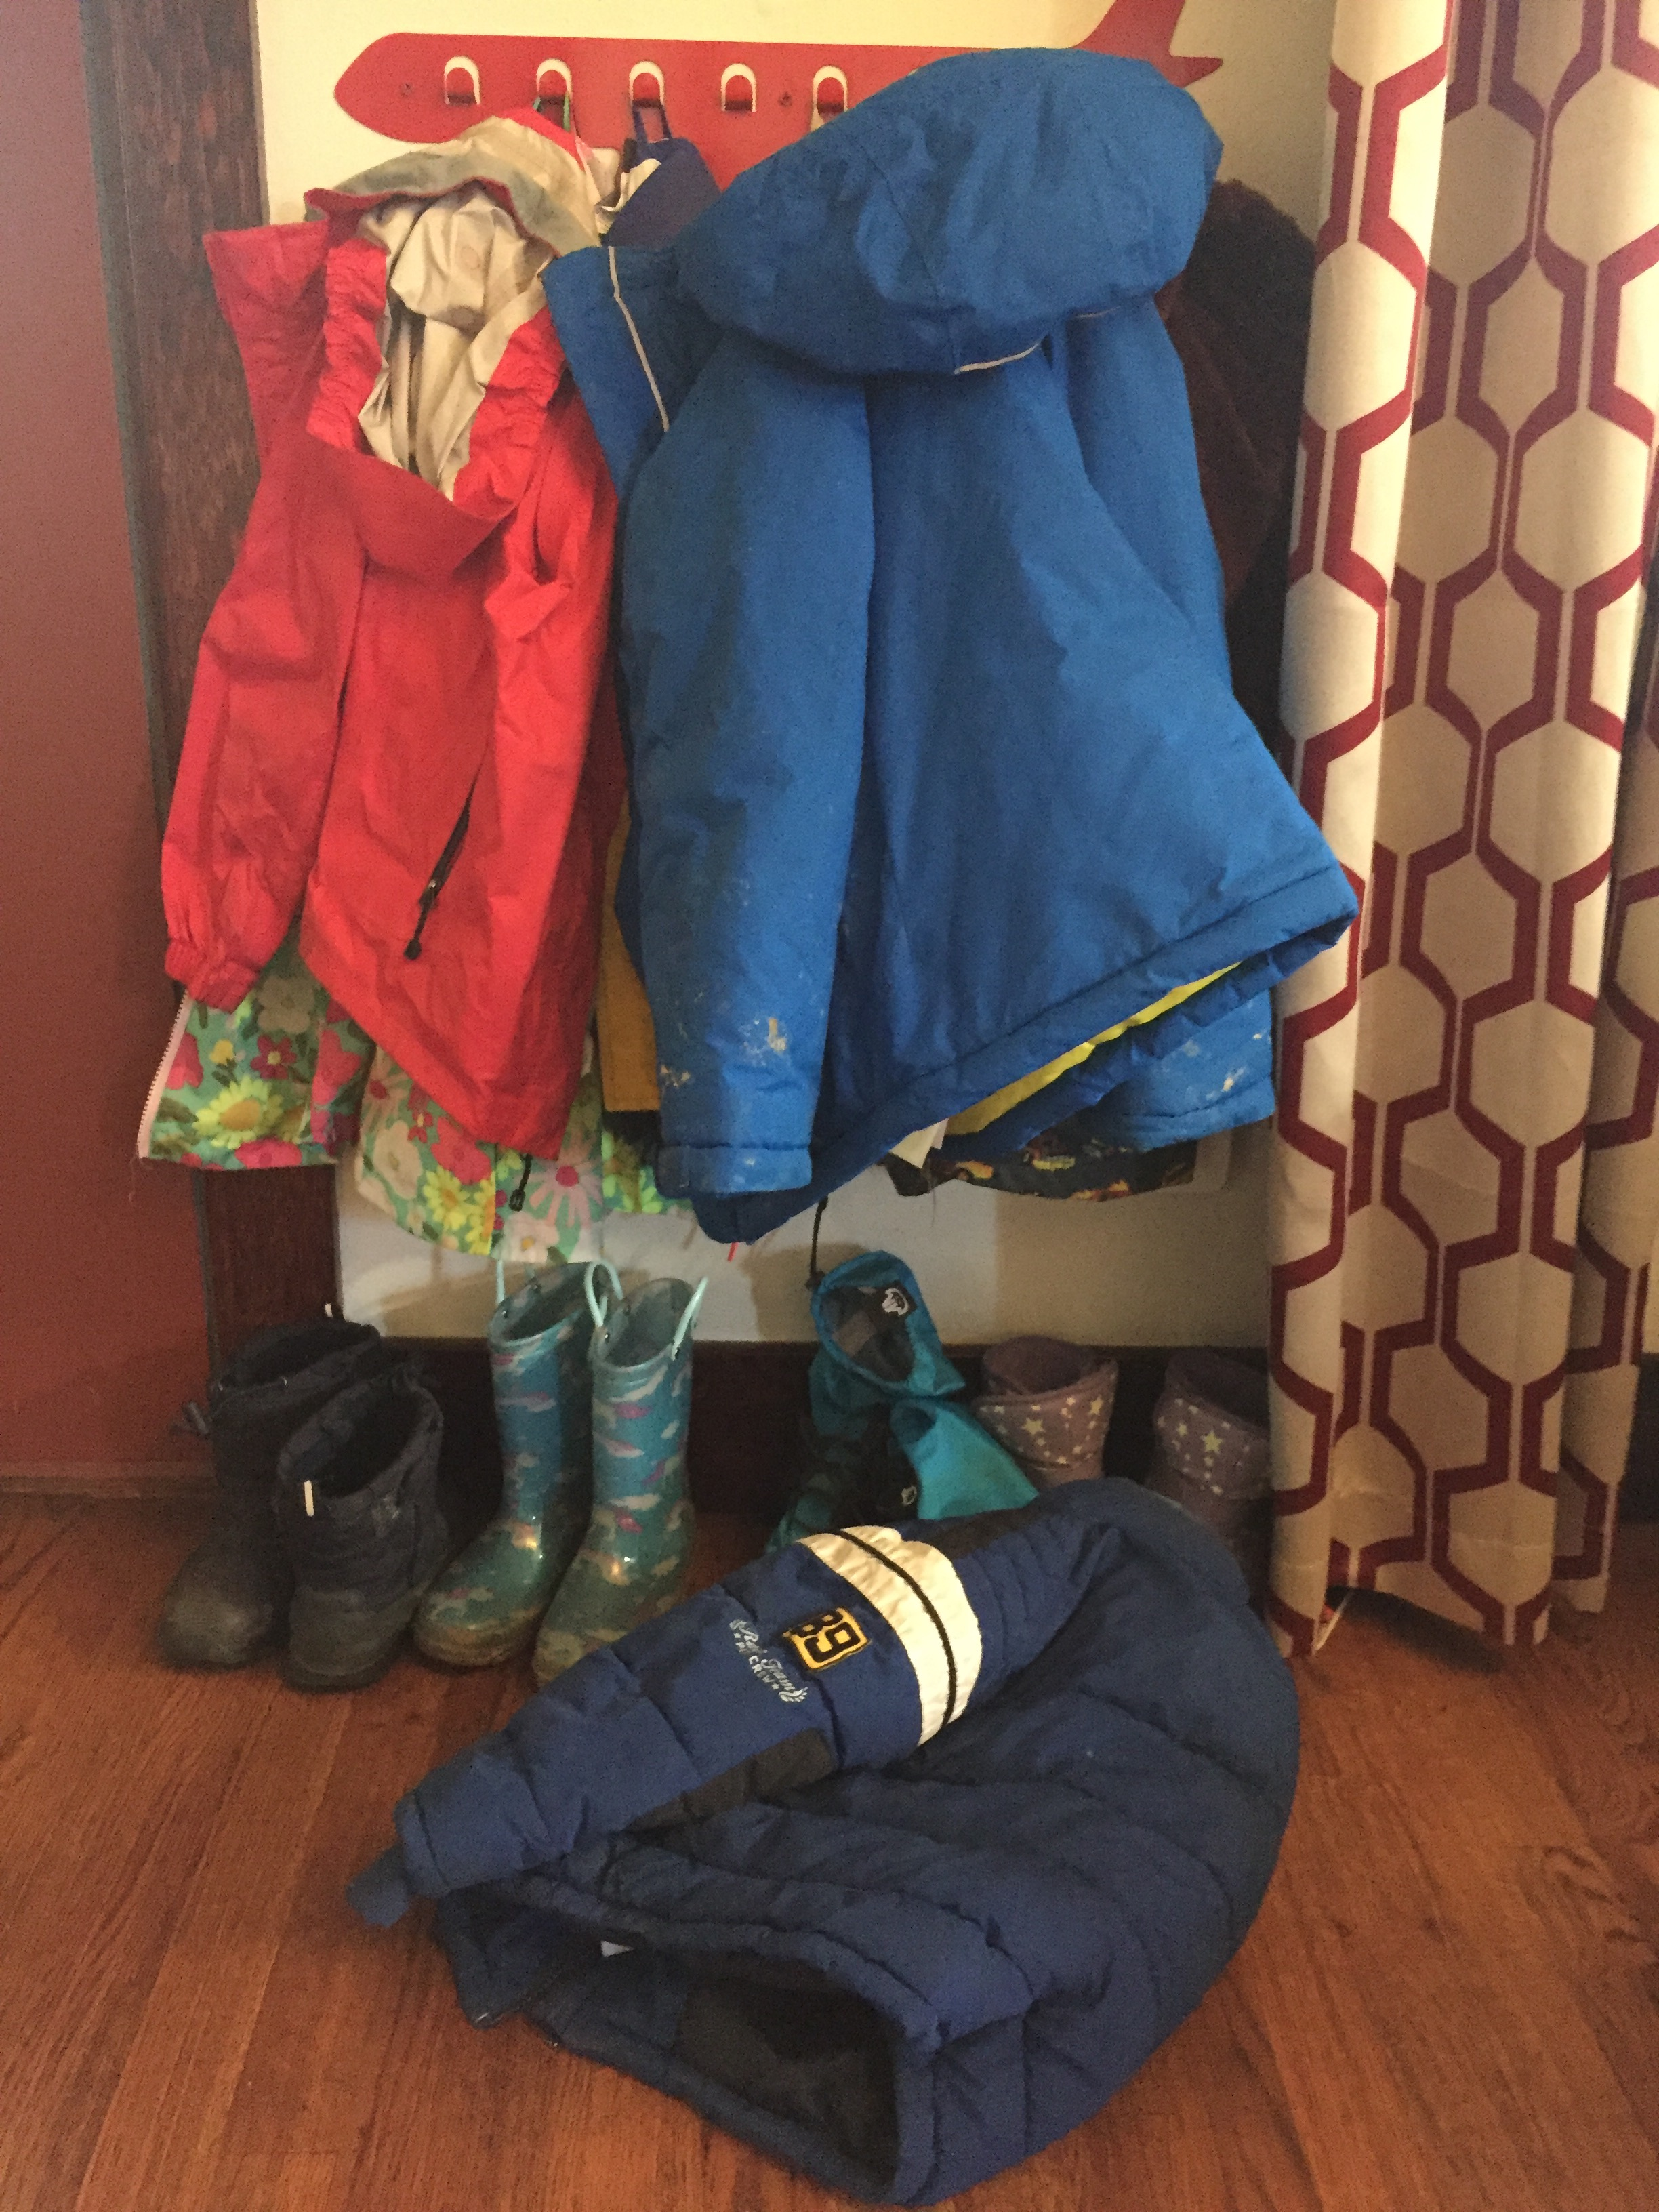 Kids jackets, rain coats, winter coat, rain boots, and snow boots hanging on airplane coat rack and sitting on floor